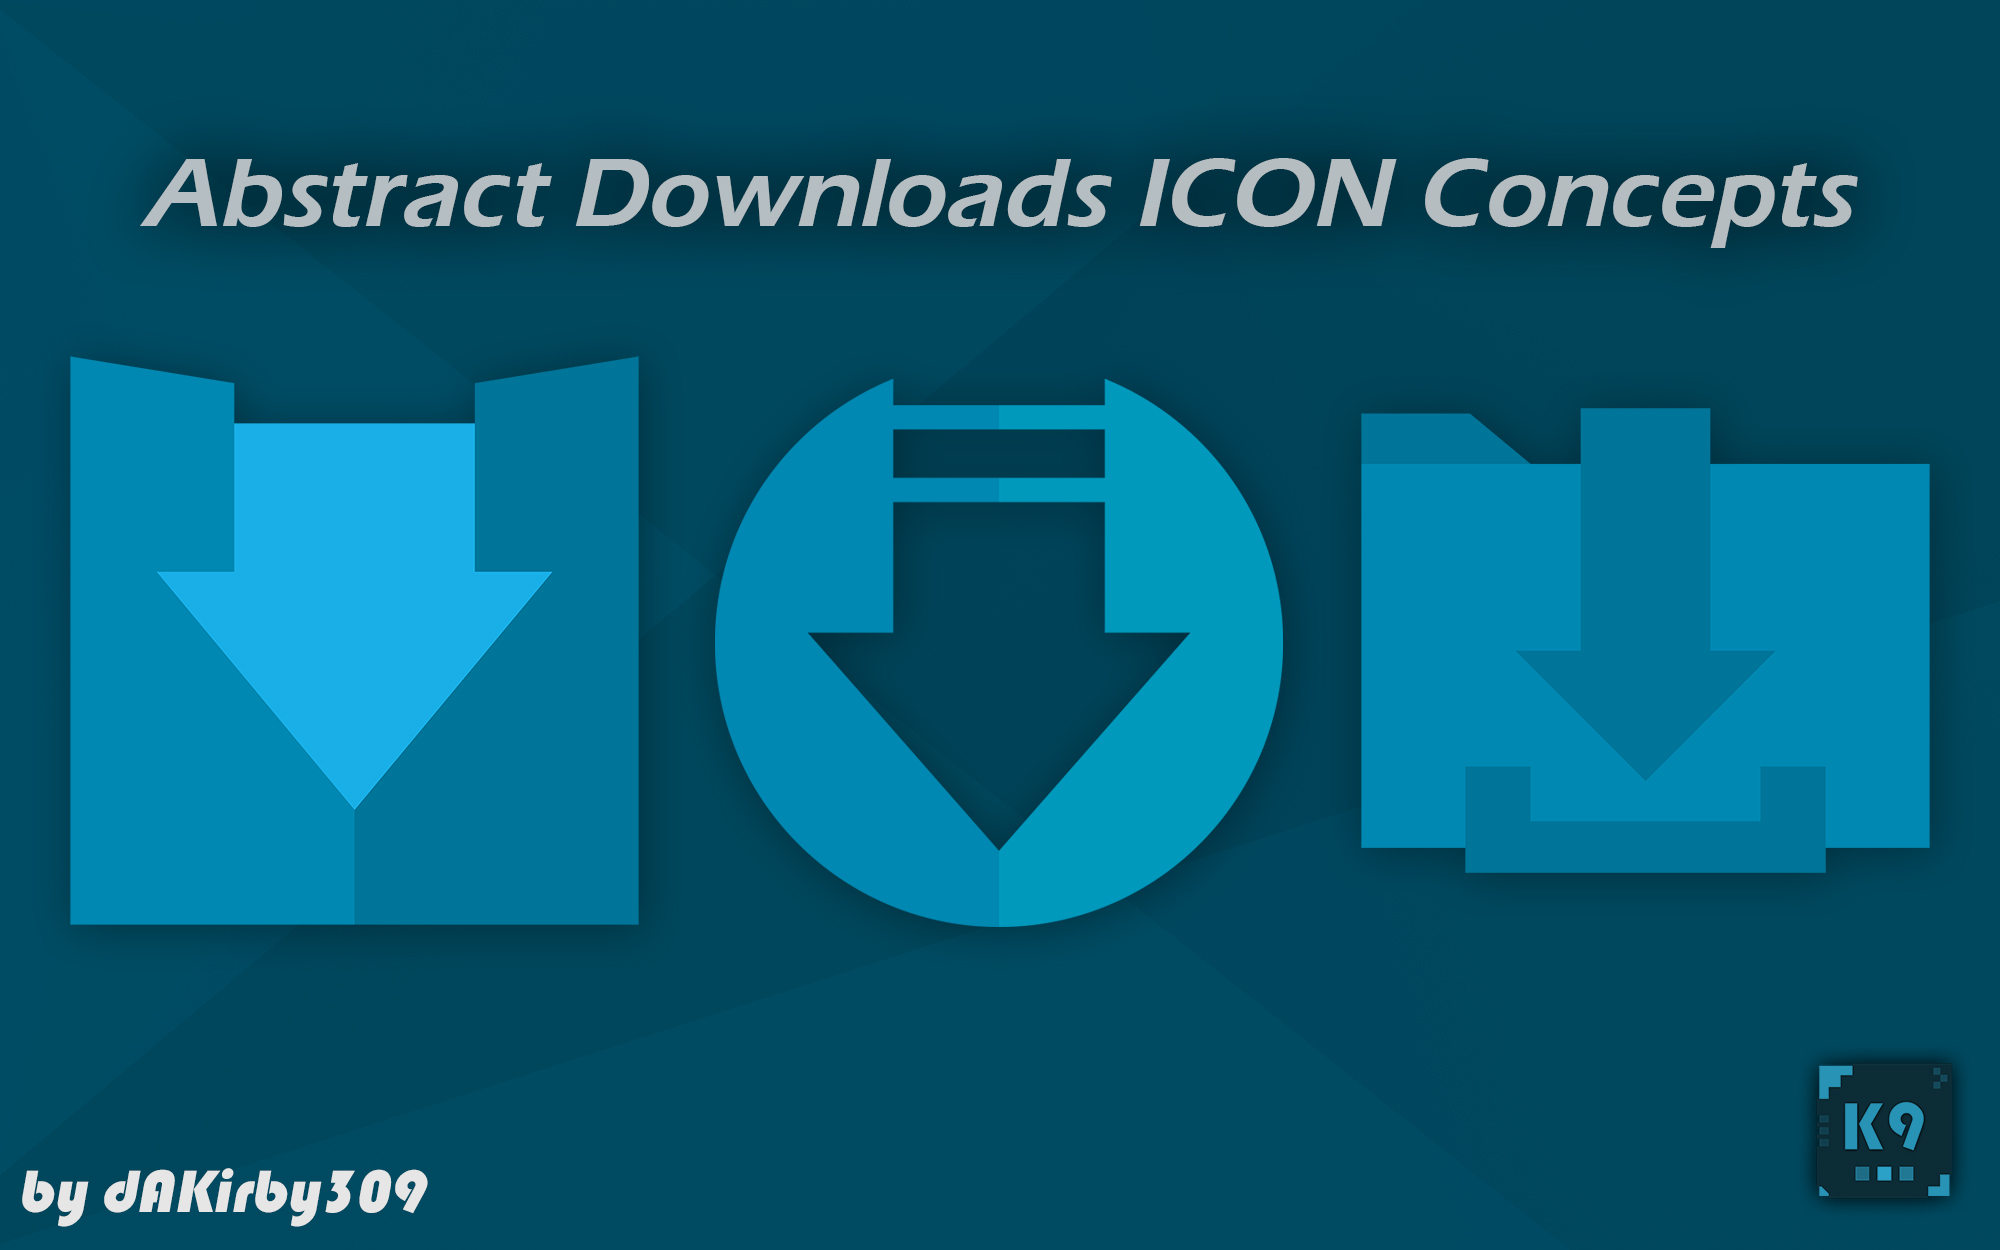 Abstract Downloads Icon Concepts - 3 HD Icons